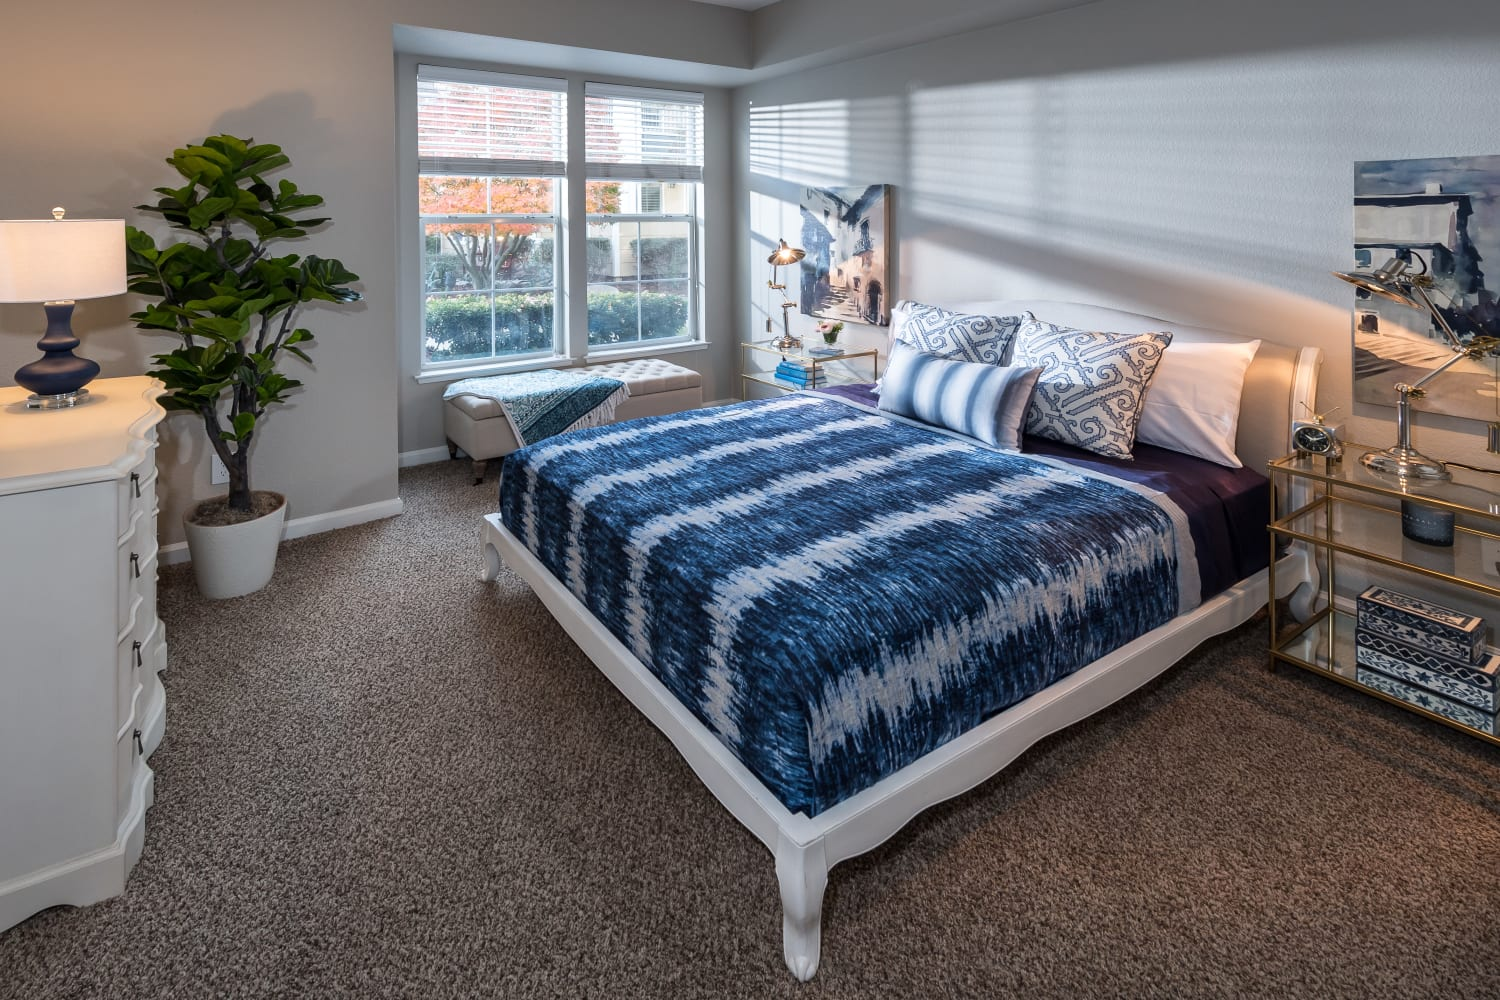 Guest bedroom at Nantucket Apartments in Santa Clara, California